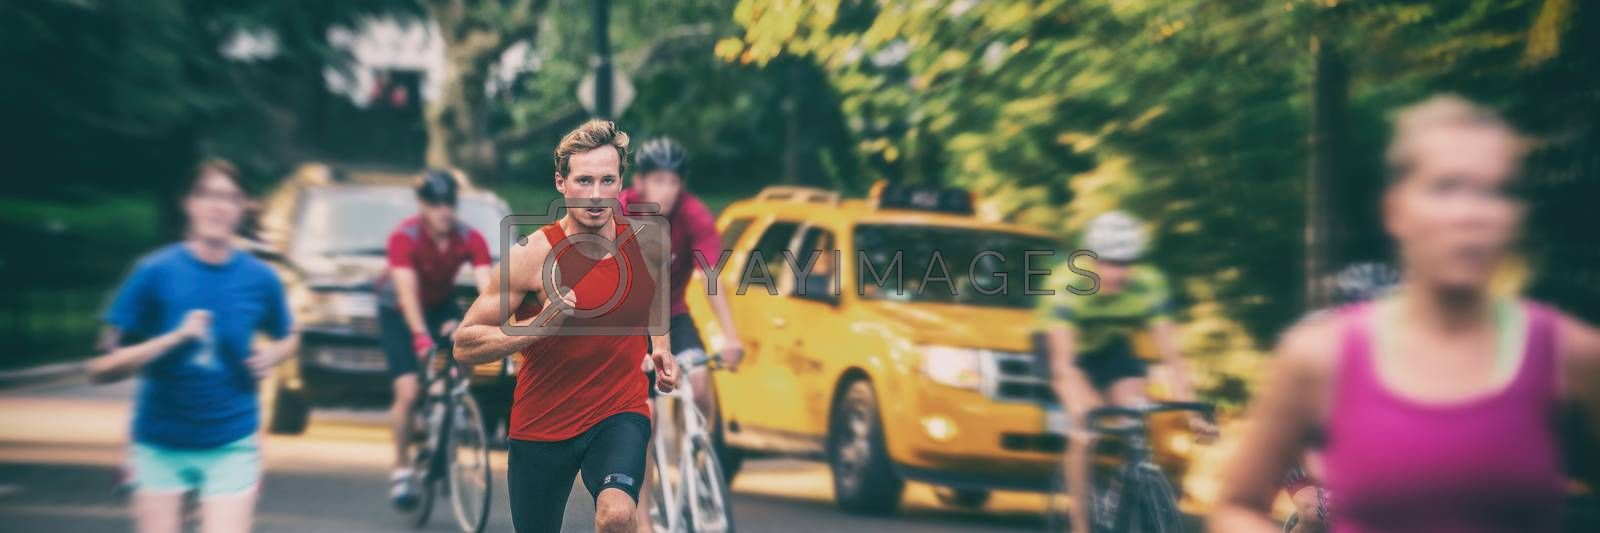 Fit runners motion blur people crowd training in city panorama banner - Athletes jogging, biking in New York city with yellow cabs cars background. Man running fast in blurred motion by Maridav